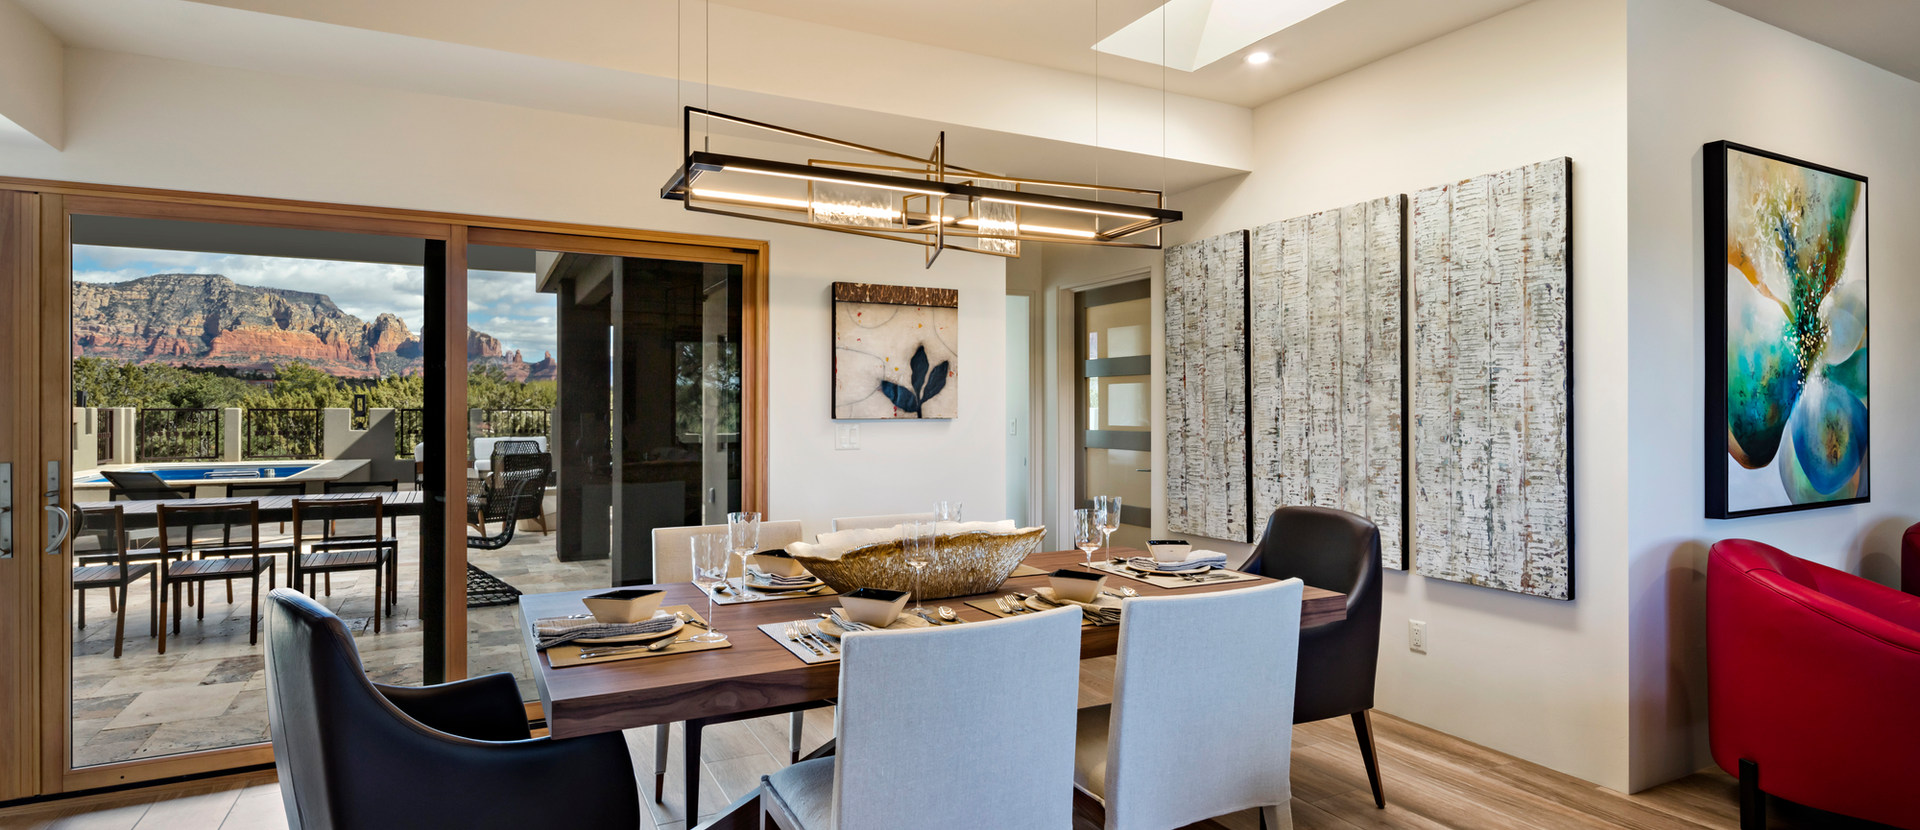 DINING AREA EXPANSION